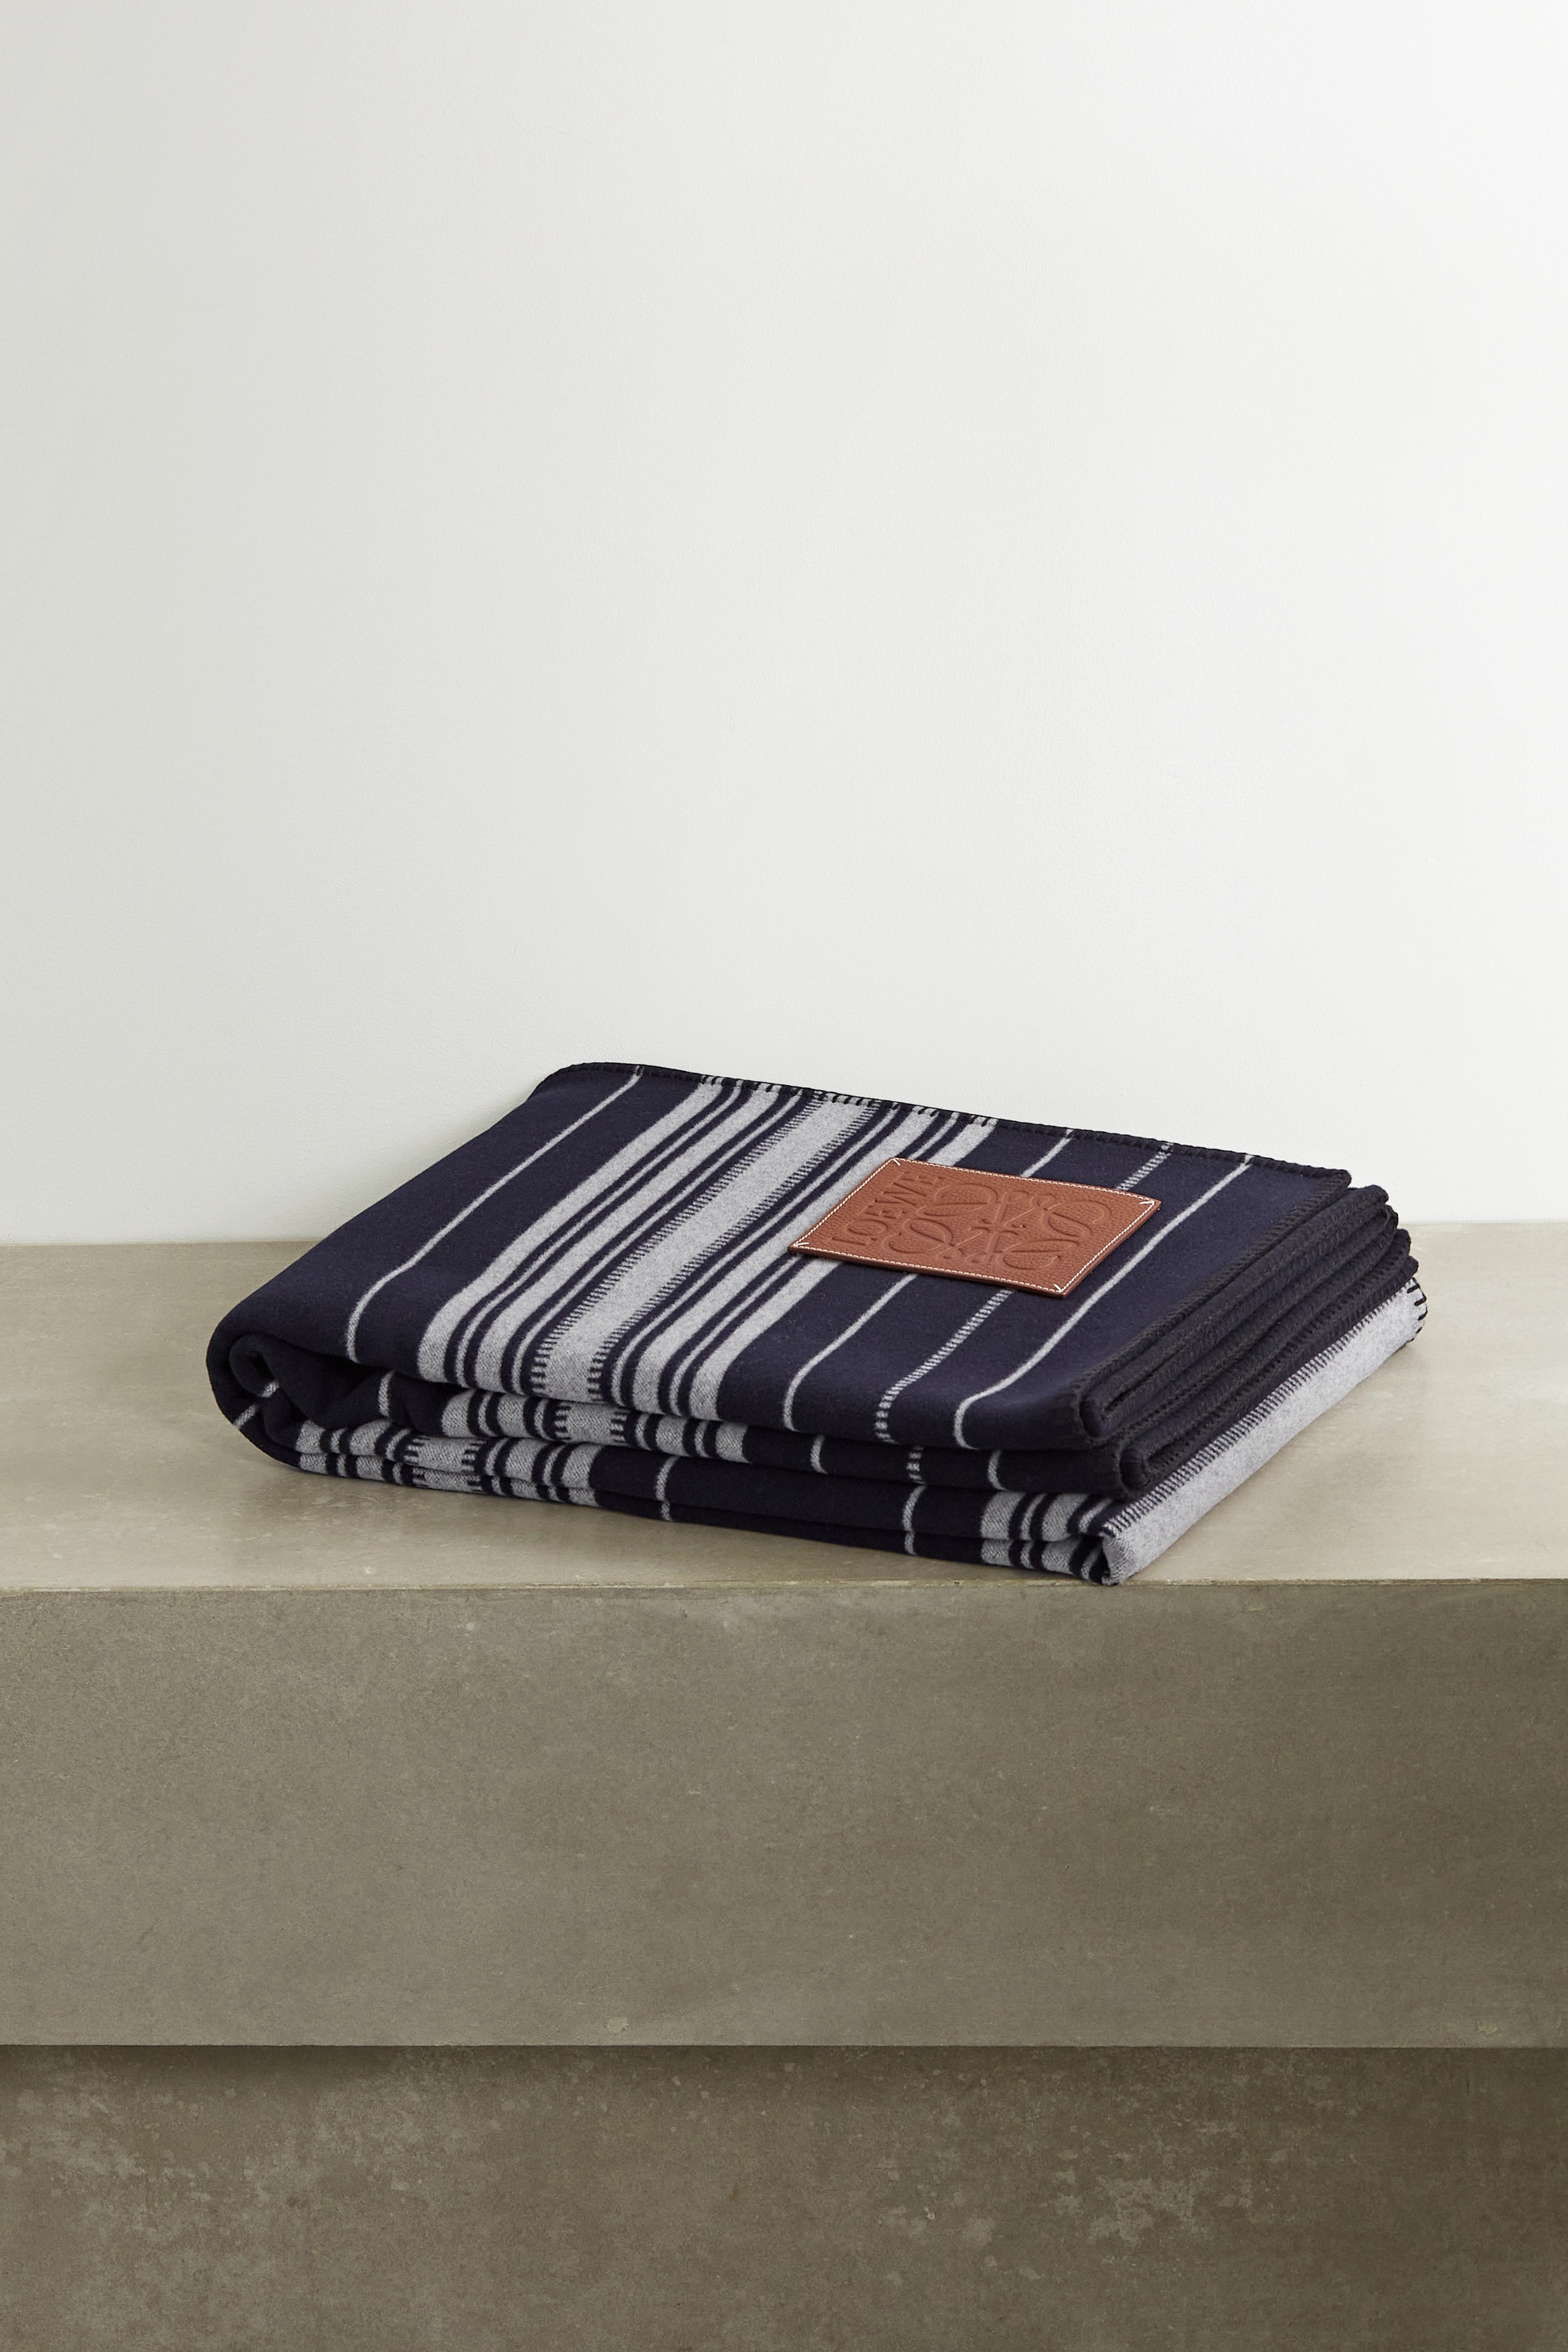 Loewe Leather-trimmed striped wool, cashmere and silk-blend blanket